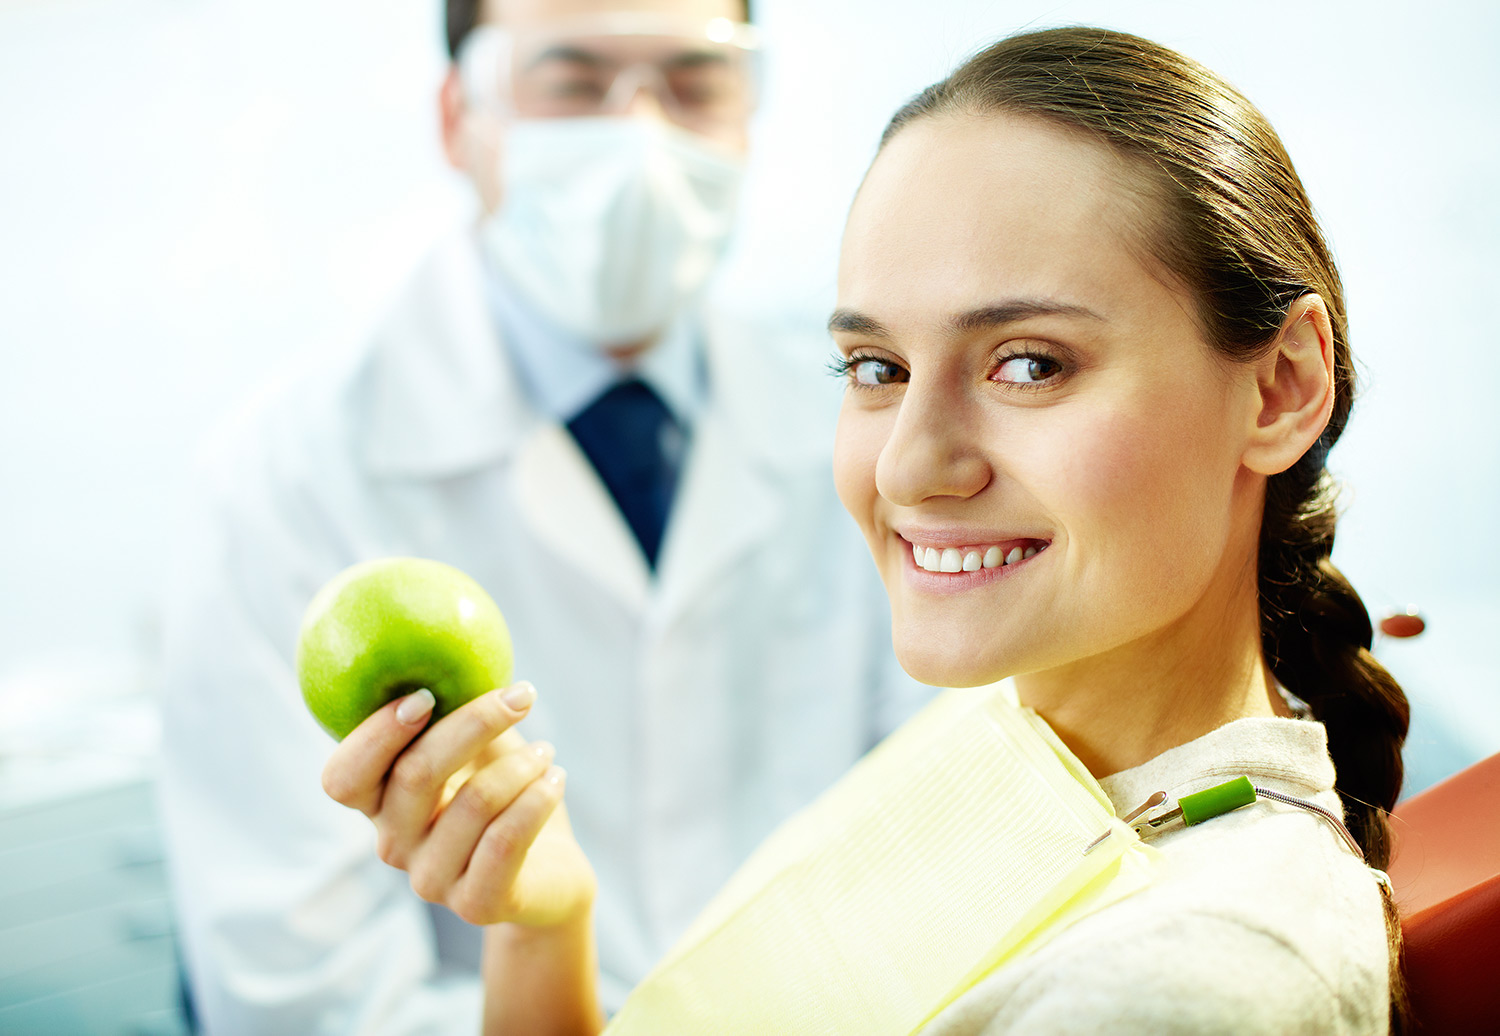 Young woman smiling at dentist green apple